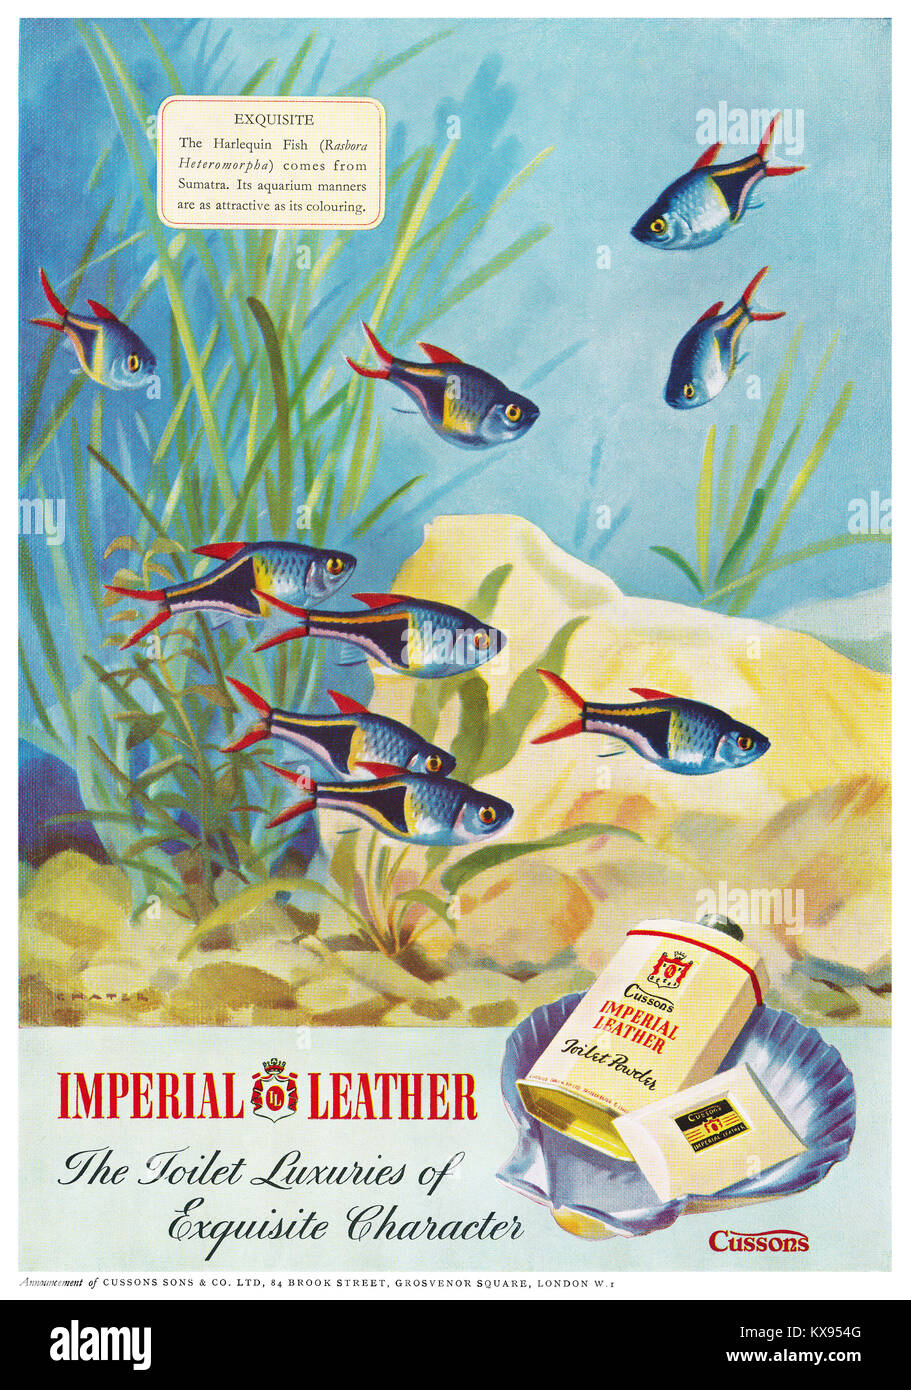 1950 British advertisement for Cussons Imperial Leather soap and talcum powder, with an illustration of Harlequin - Stock Image